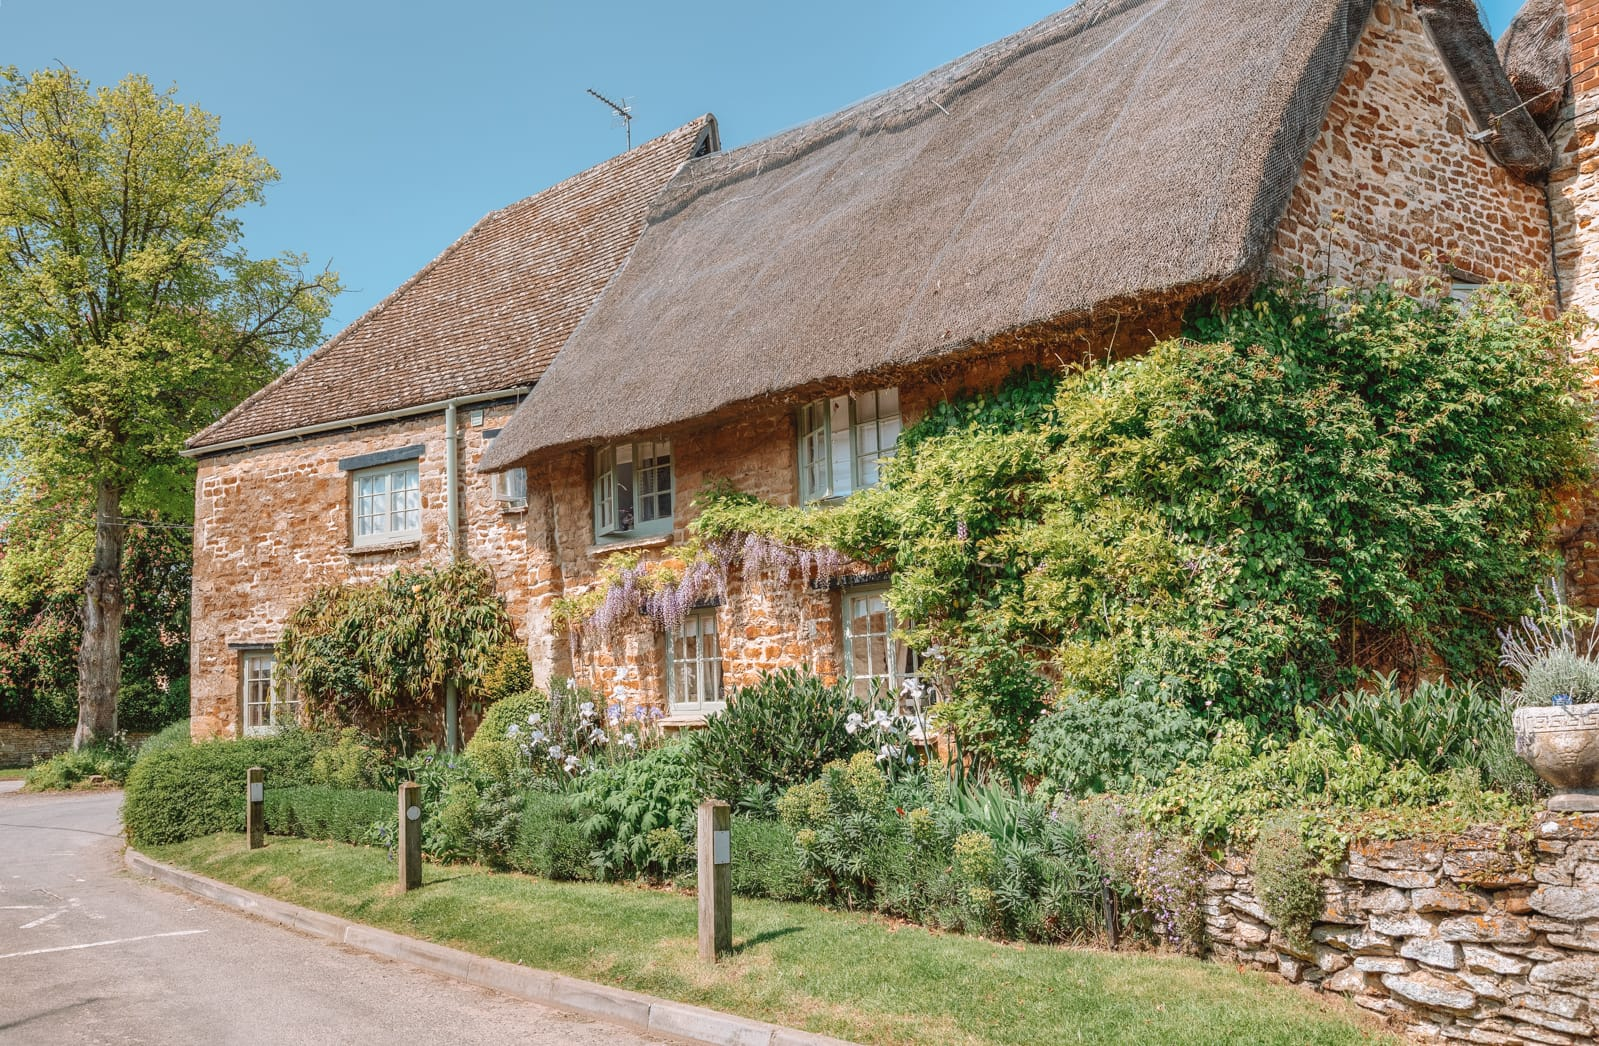 14 Best Places In The Cotswolds You Should Visit (11)